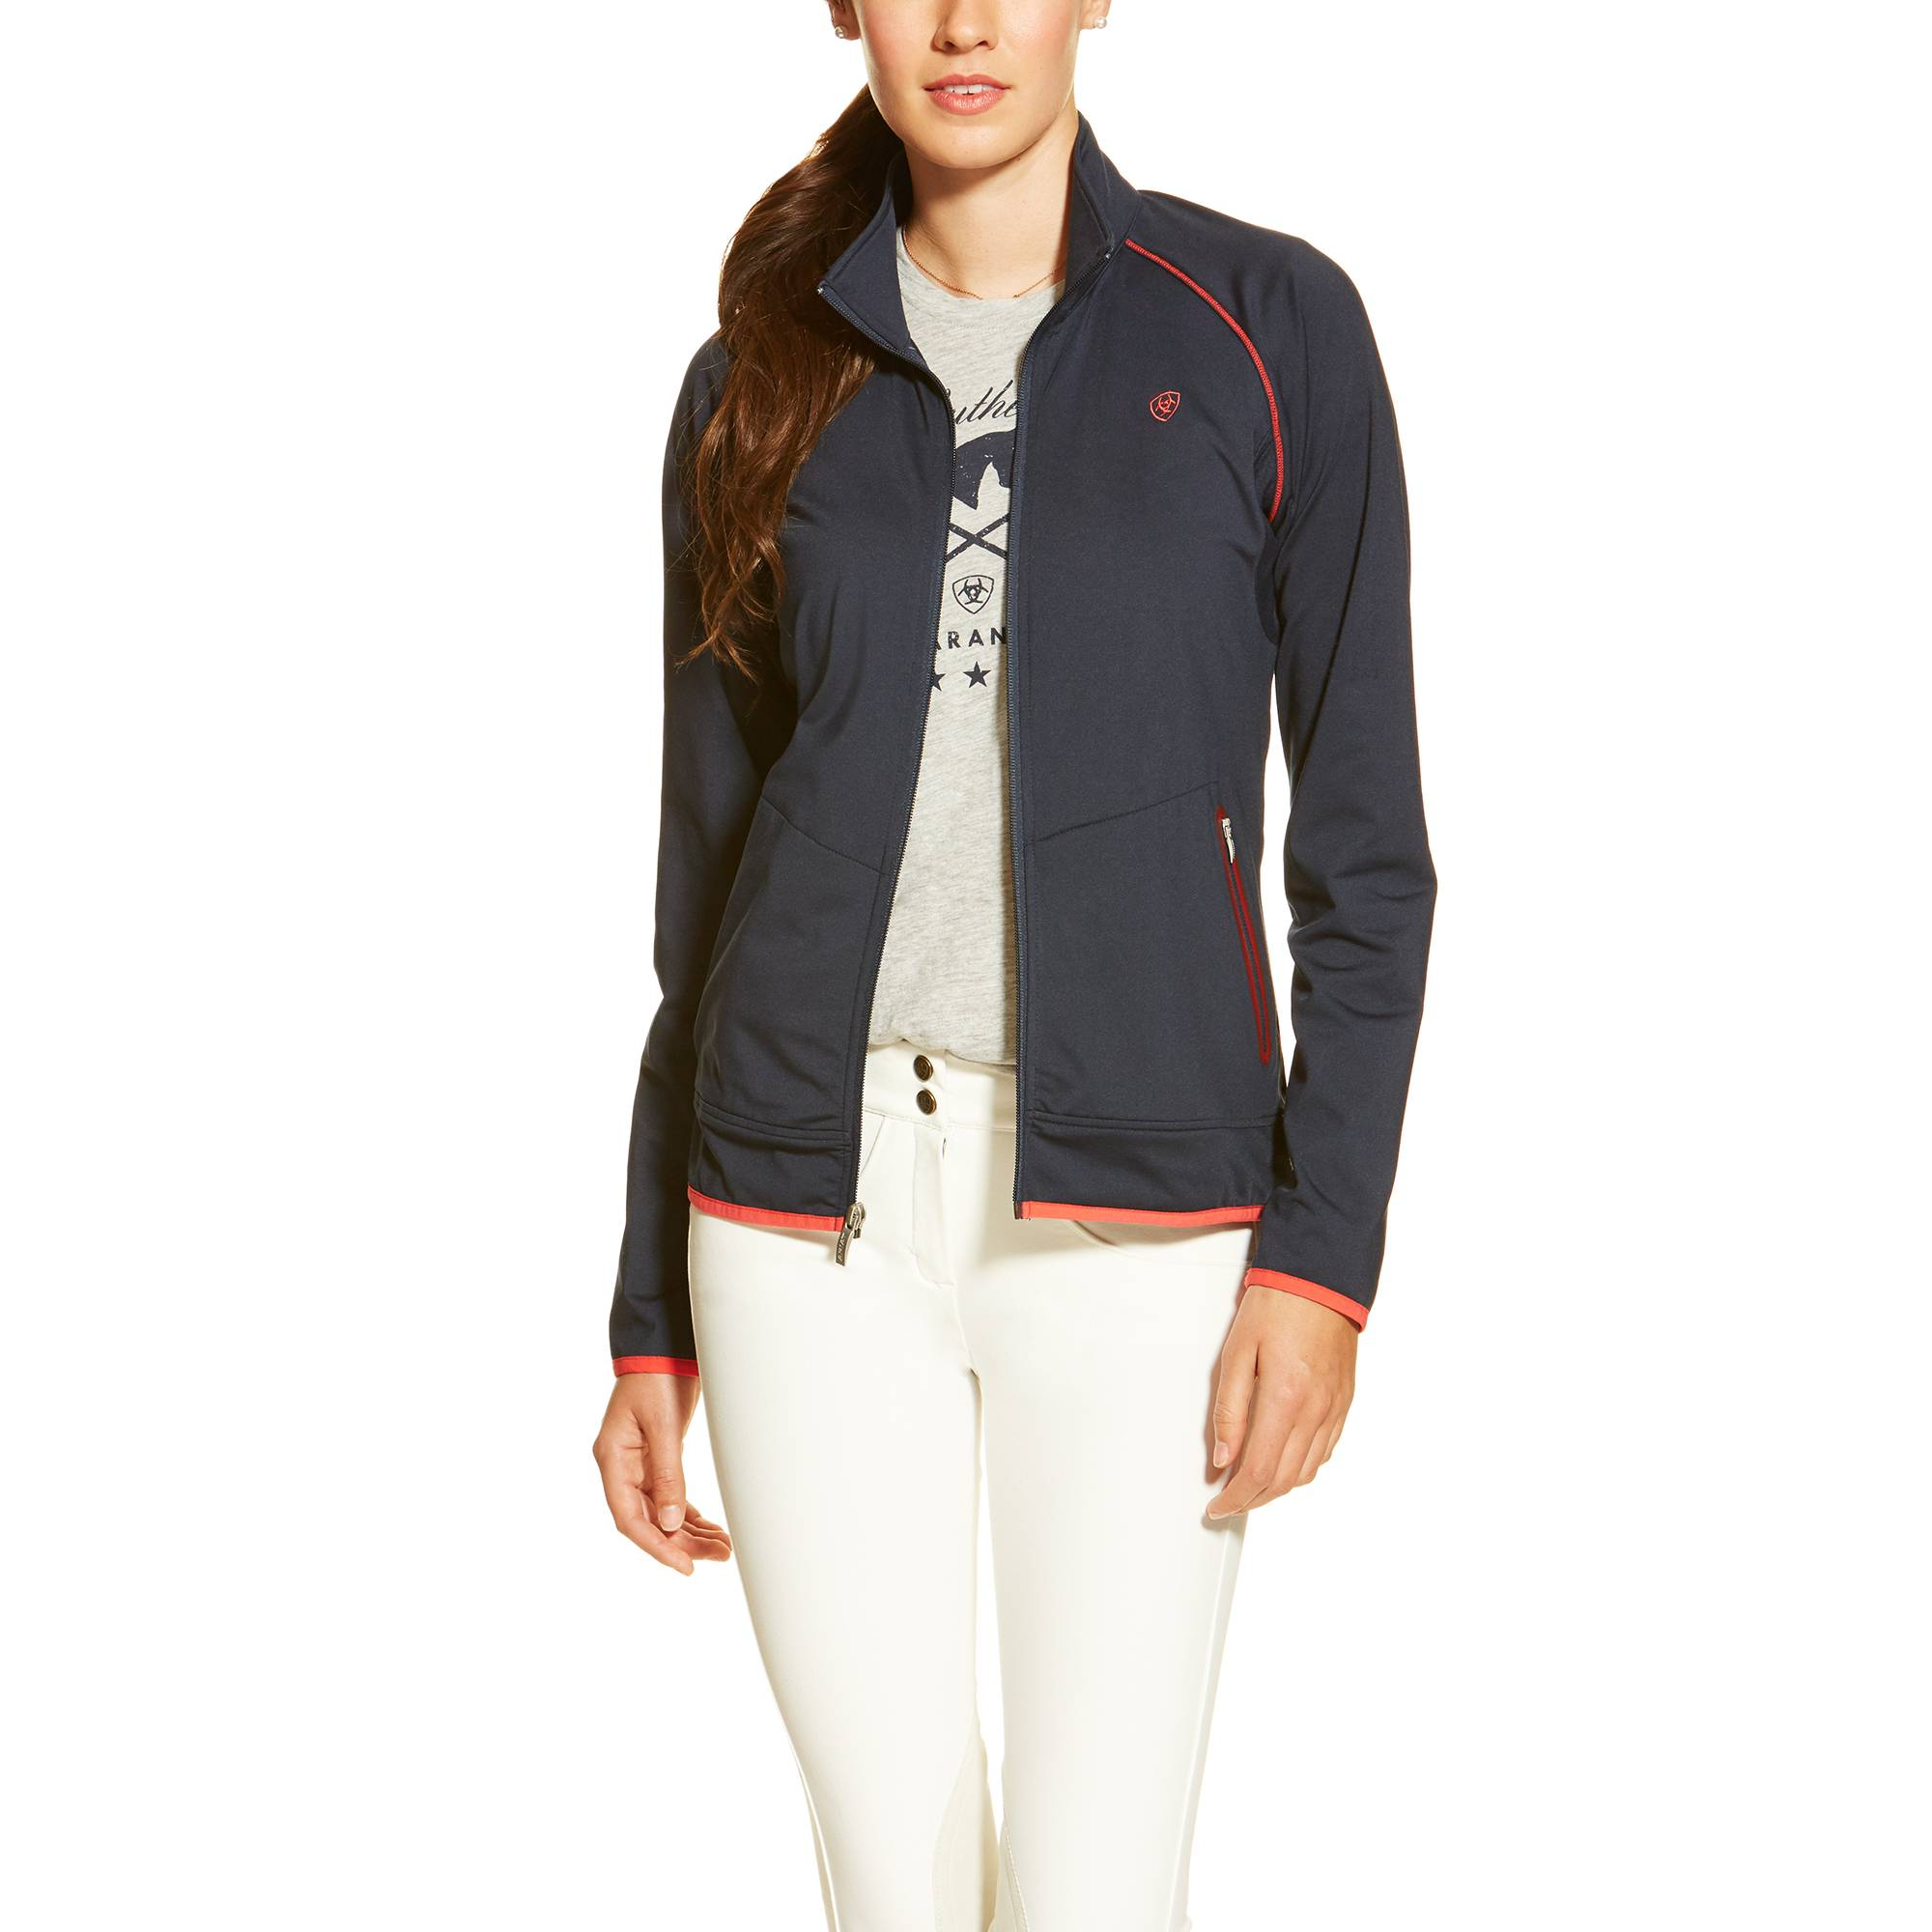 Ariat Ballad Full Zip - Ladies - Navy